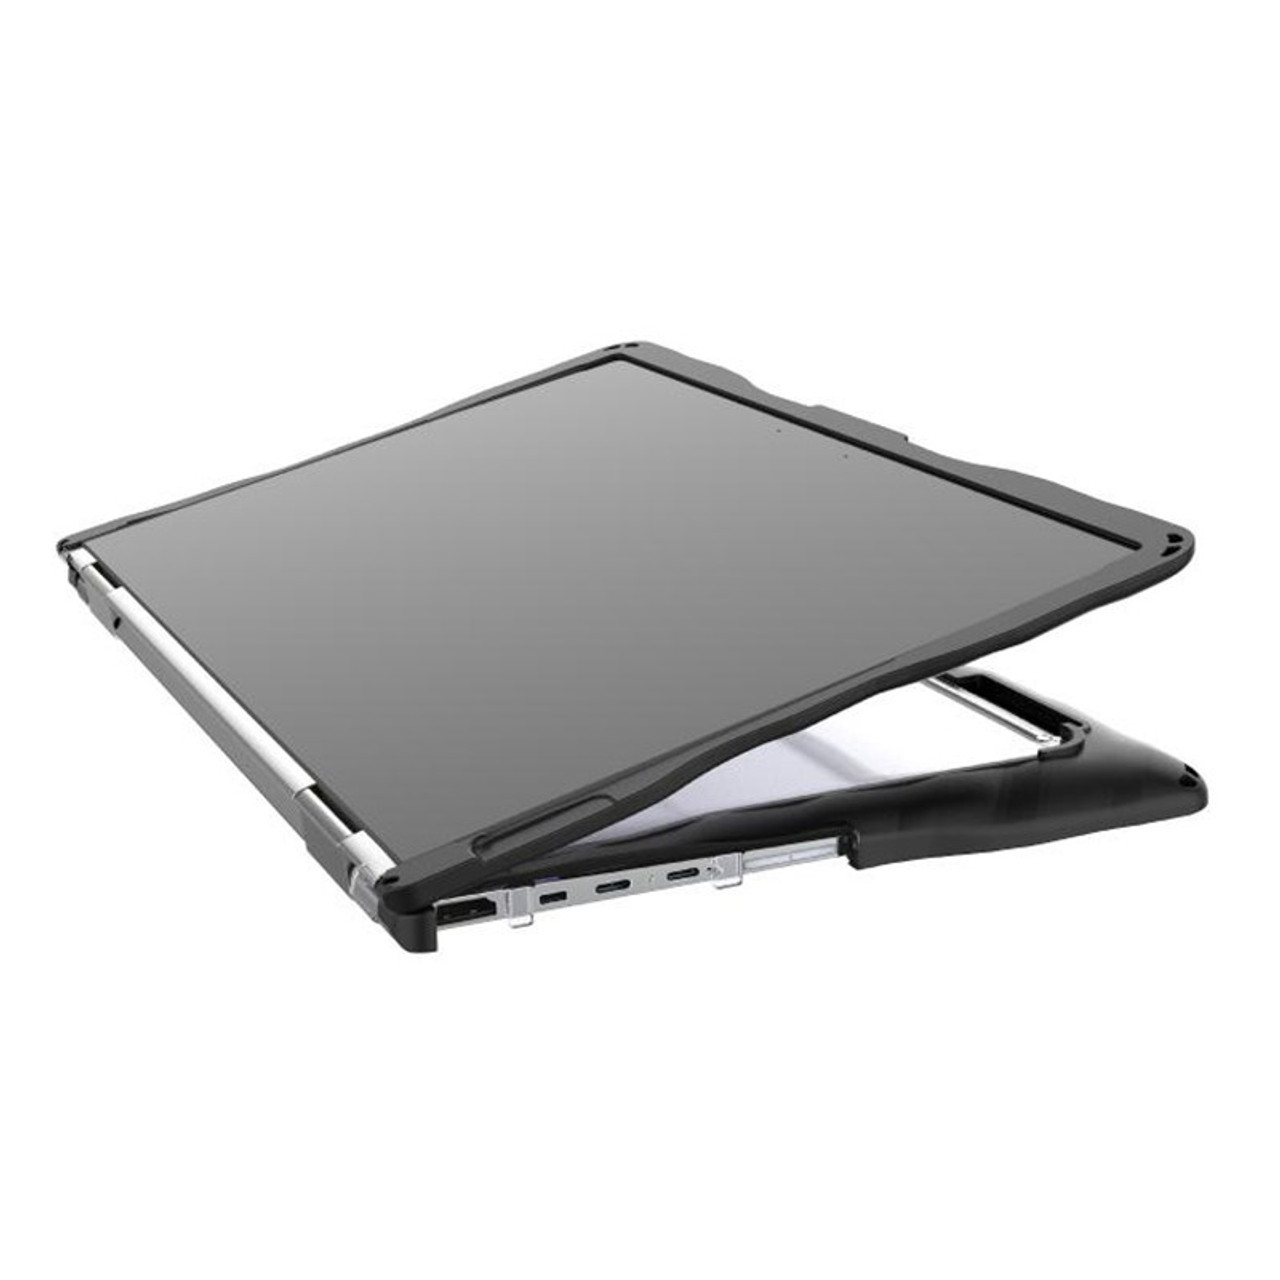 Image for Gumdrop DropTech Protective Case for HP Elitebook x360 1030 G3 CX Computer Superstore